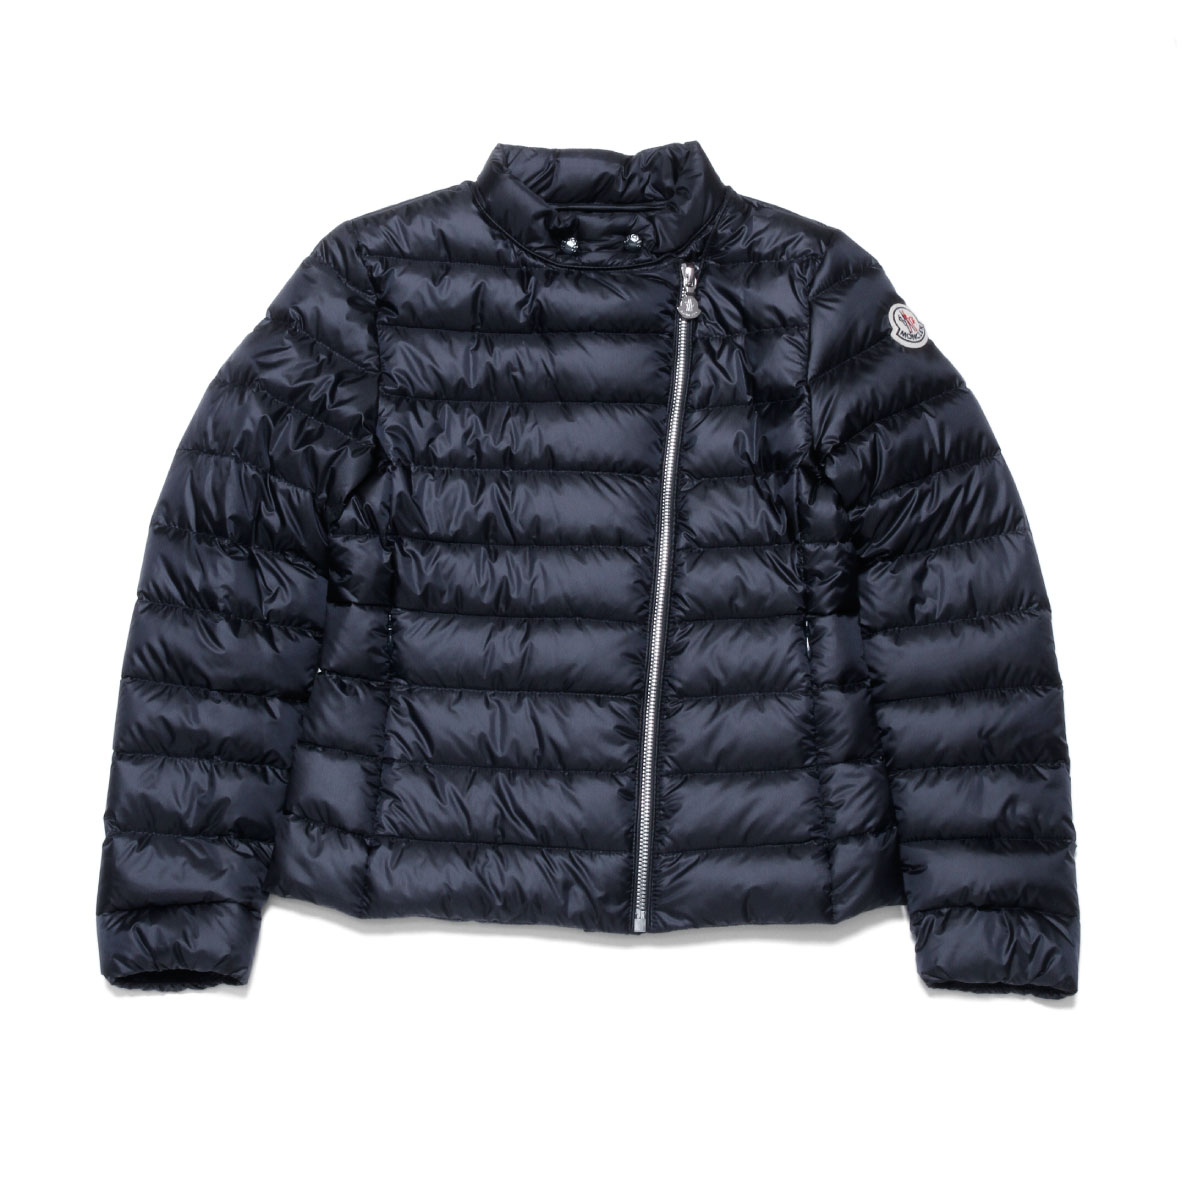 4f8c891093ef Monk rail MONCLER outer kids girls AMY 53048 778 down jacket AMY net NAVY  dark blue